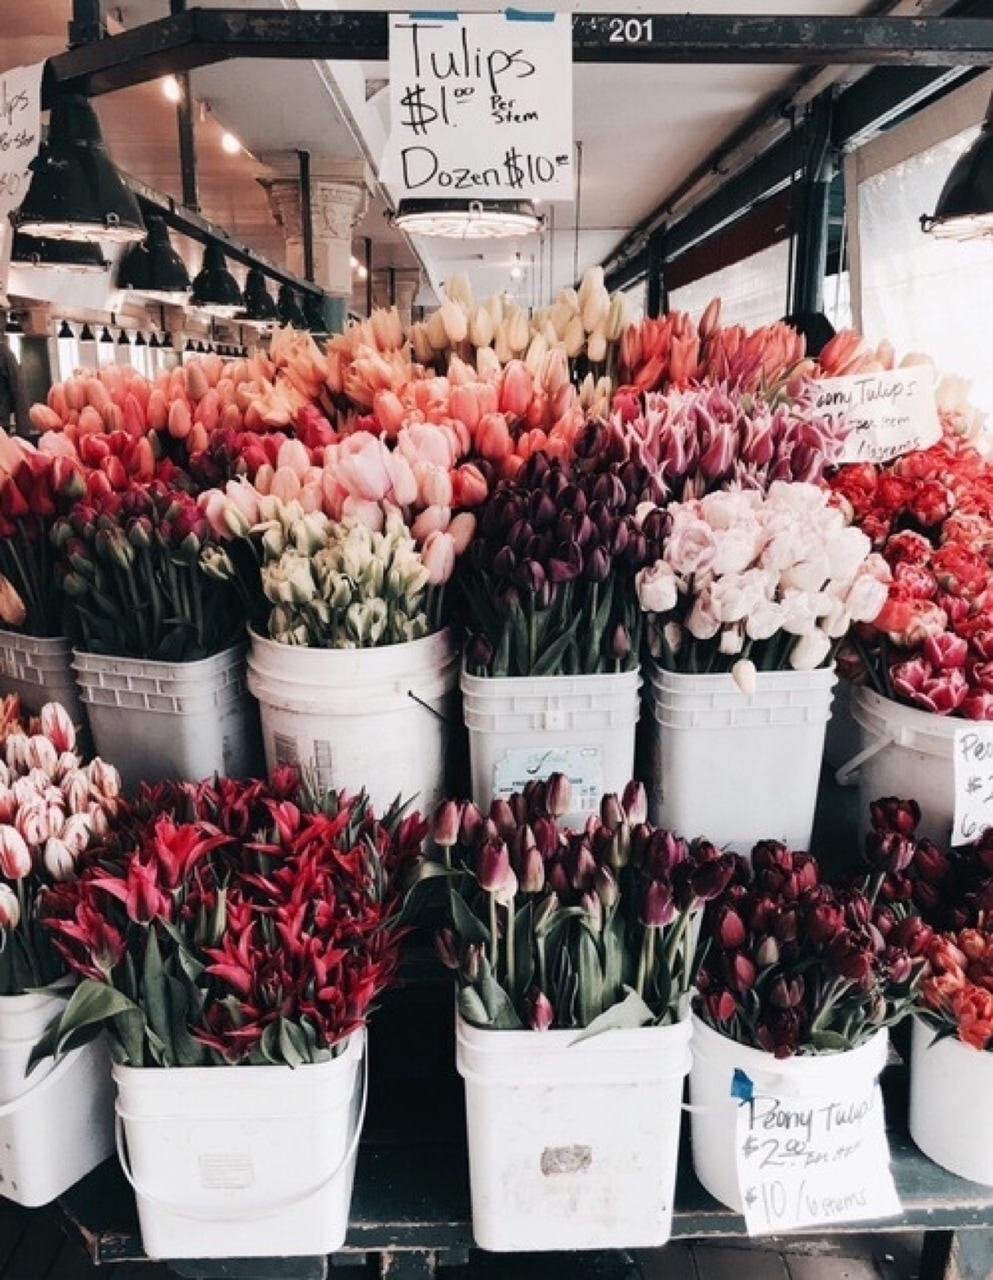 tulips, summer, flowers and spring is here